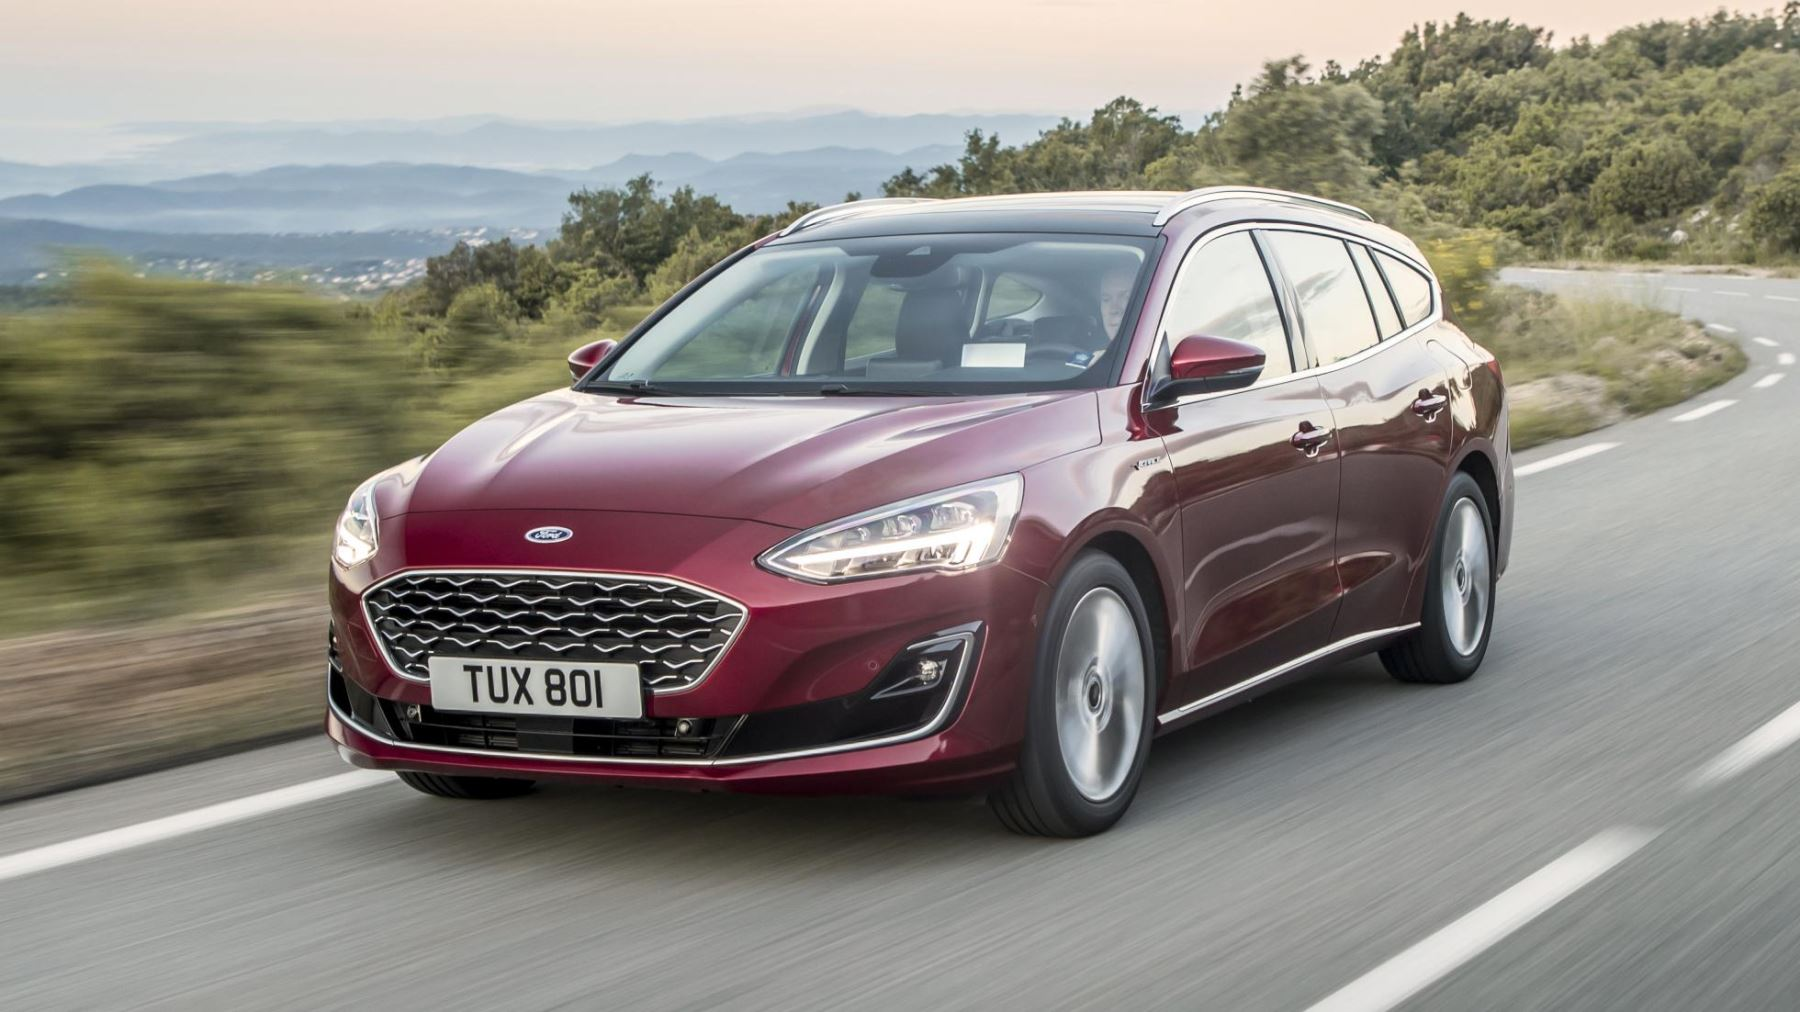 Ford Focus Vignale 2.0 Diesel 150ps Diesel Automatic 5 door Estate (2019)